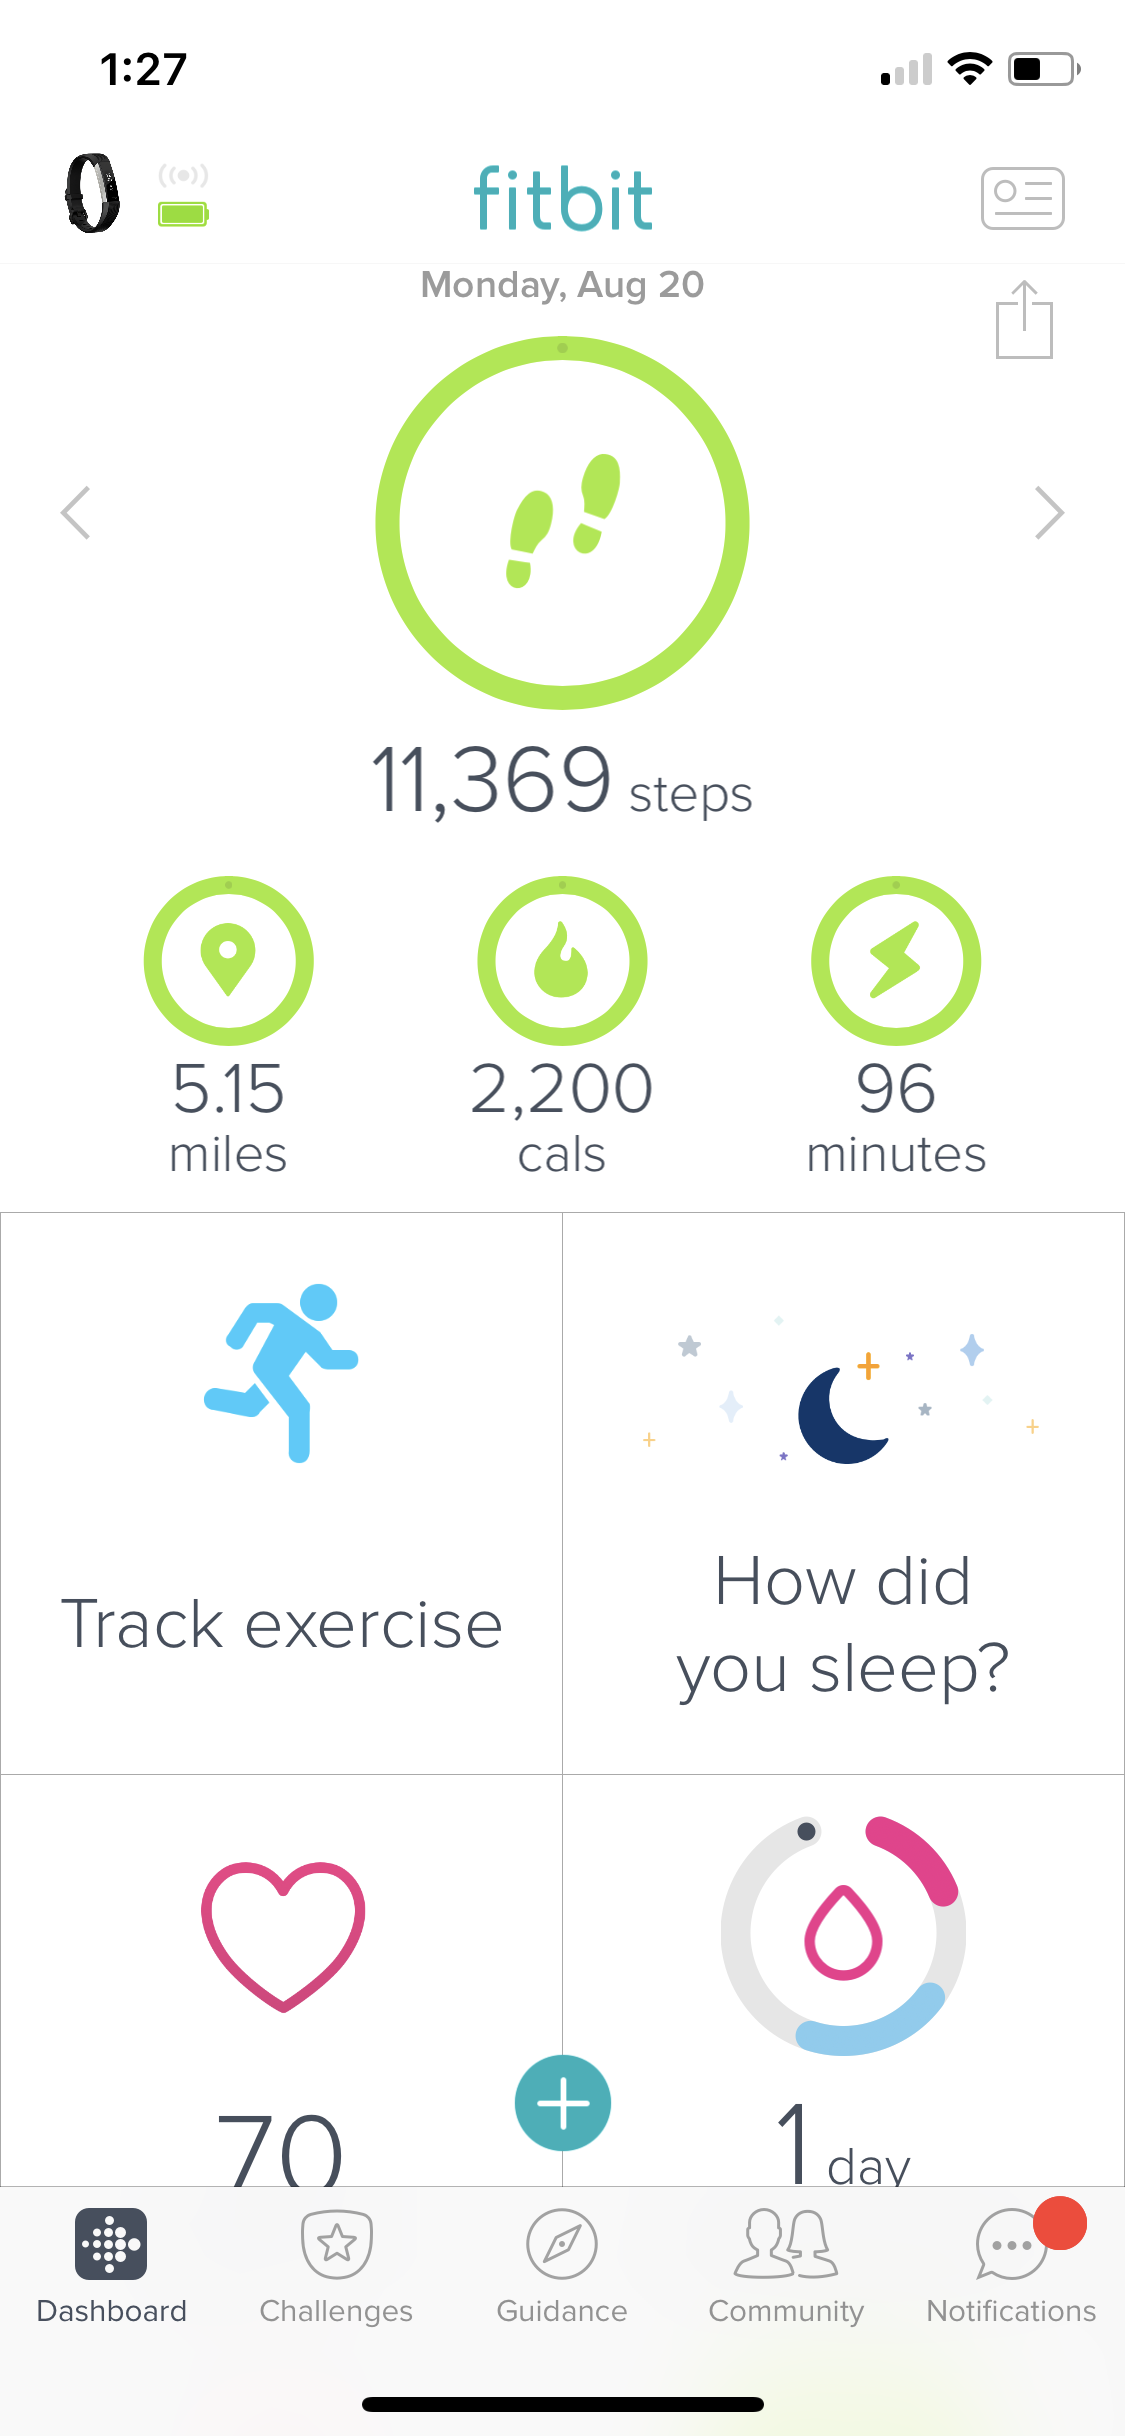 fitbit user interface